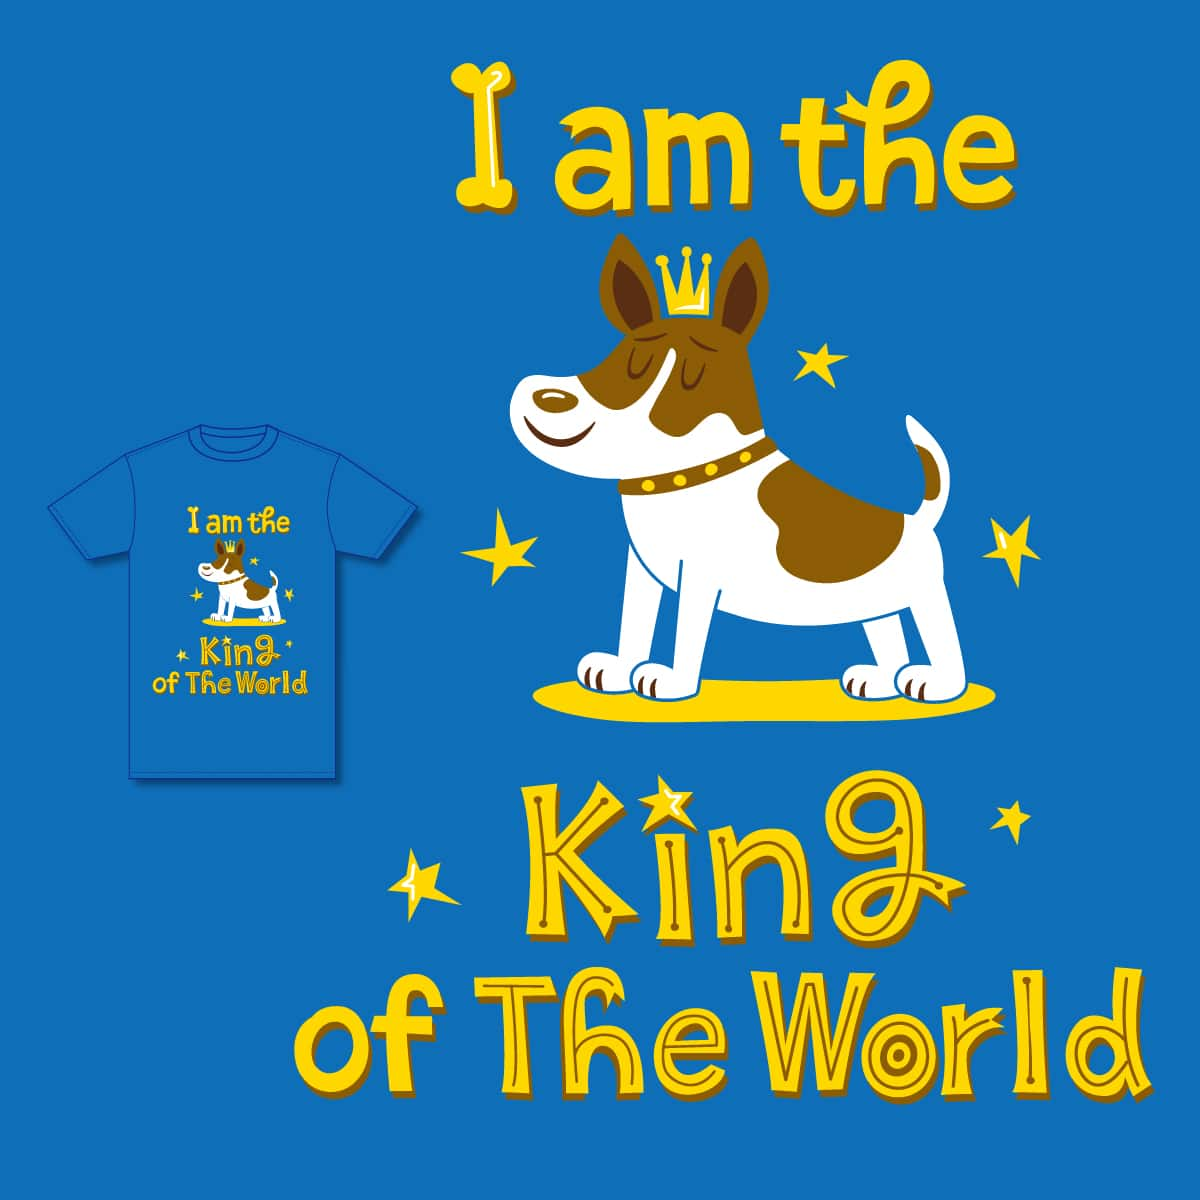 King of the world by Chen,Yen-Wen on Threadless